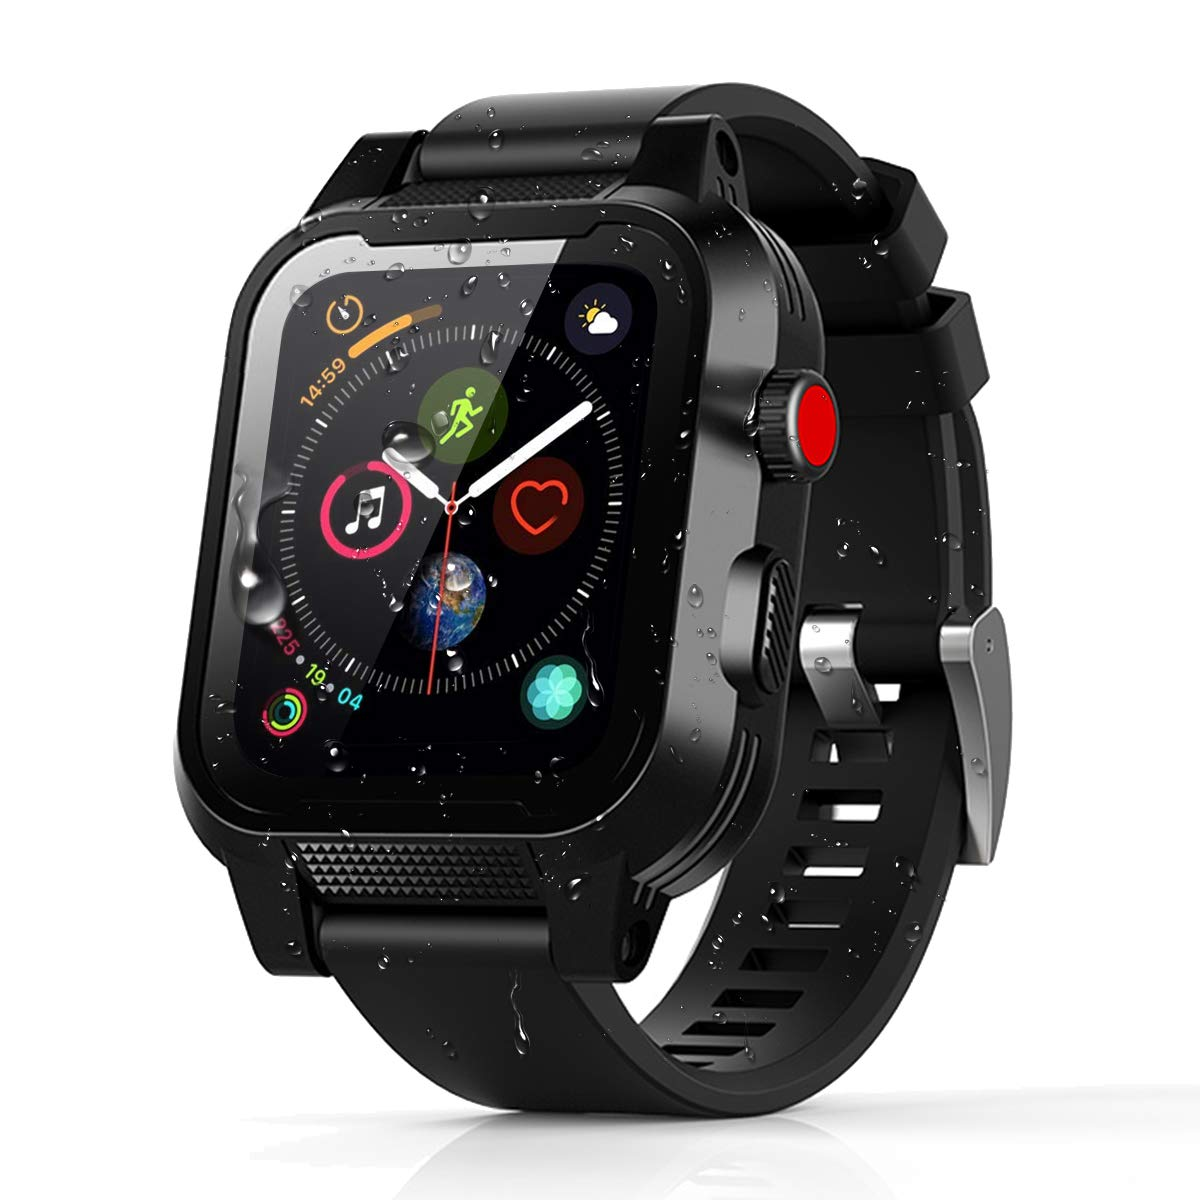 momots Apple Watch Case, Apple Watch Series 4 Full-Body Waterproof Case with Built in Screen Protector Bumper iWatch 4 Cases (iWatch 4 44mm Black) by momots